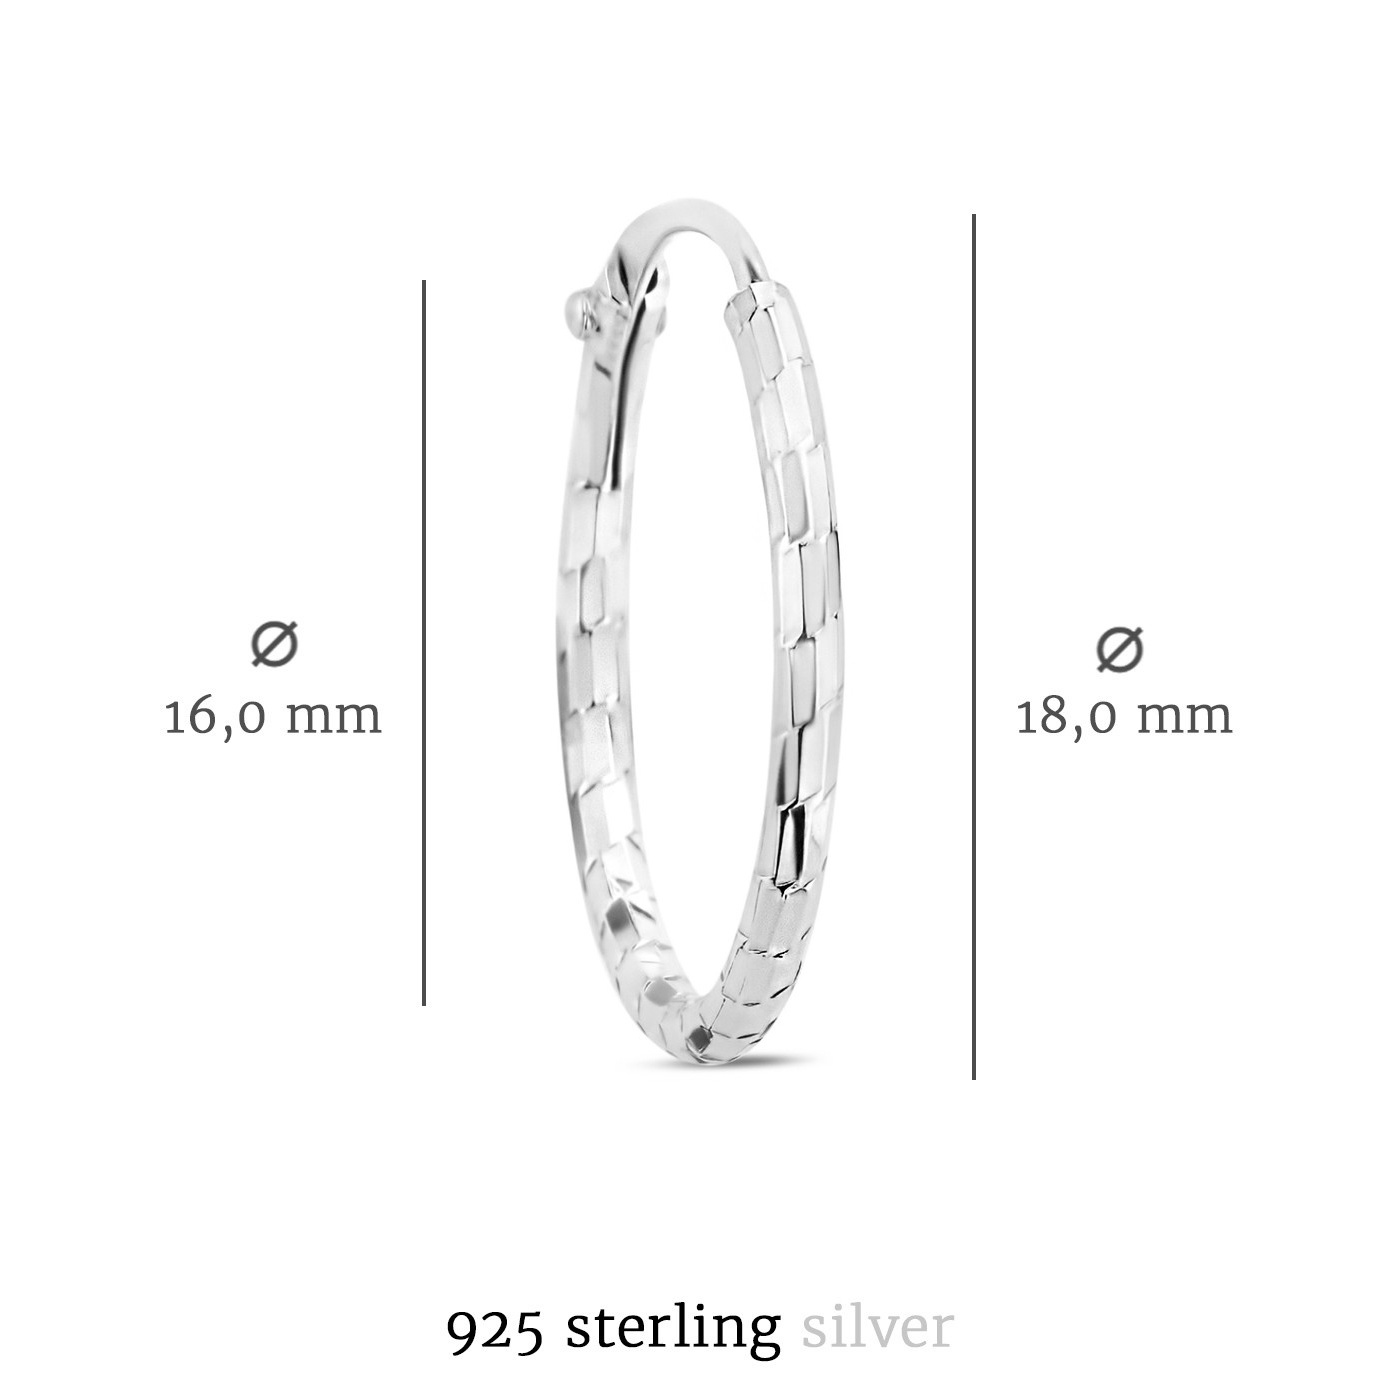 Selected Jewels Zoé 925 sterling silver creoles